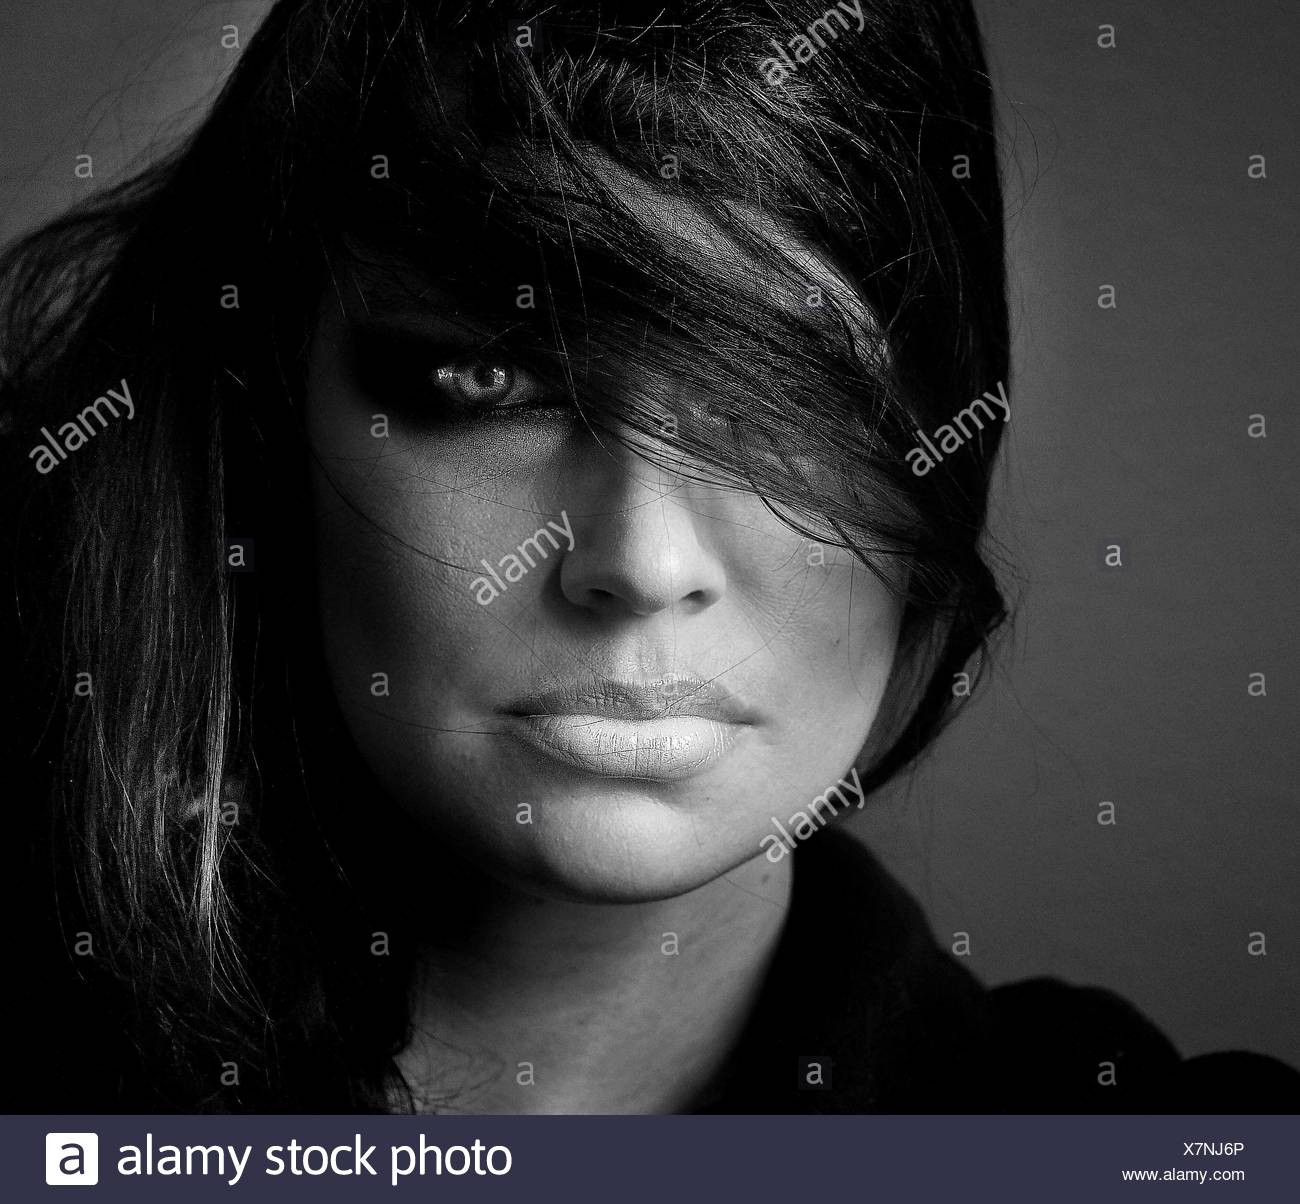 Close-Up Portrait Of Woman With Tousled Hair - Stock Image